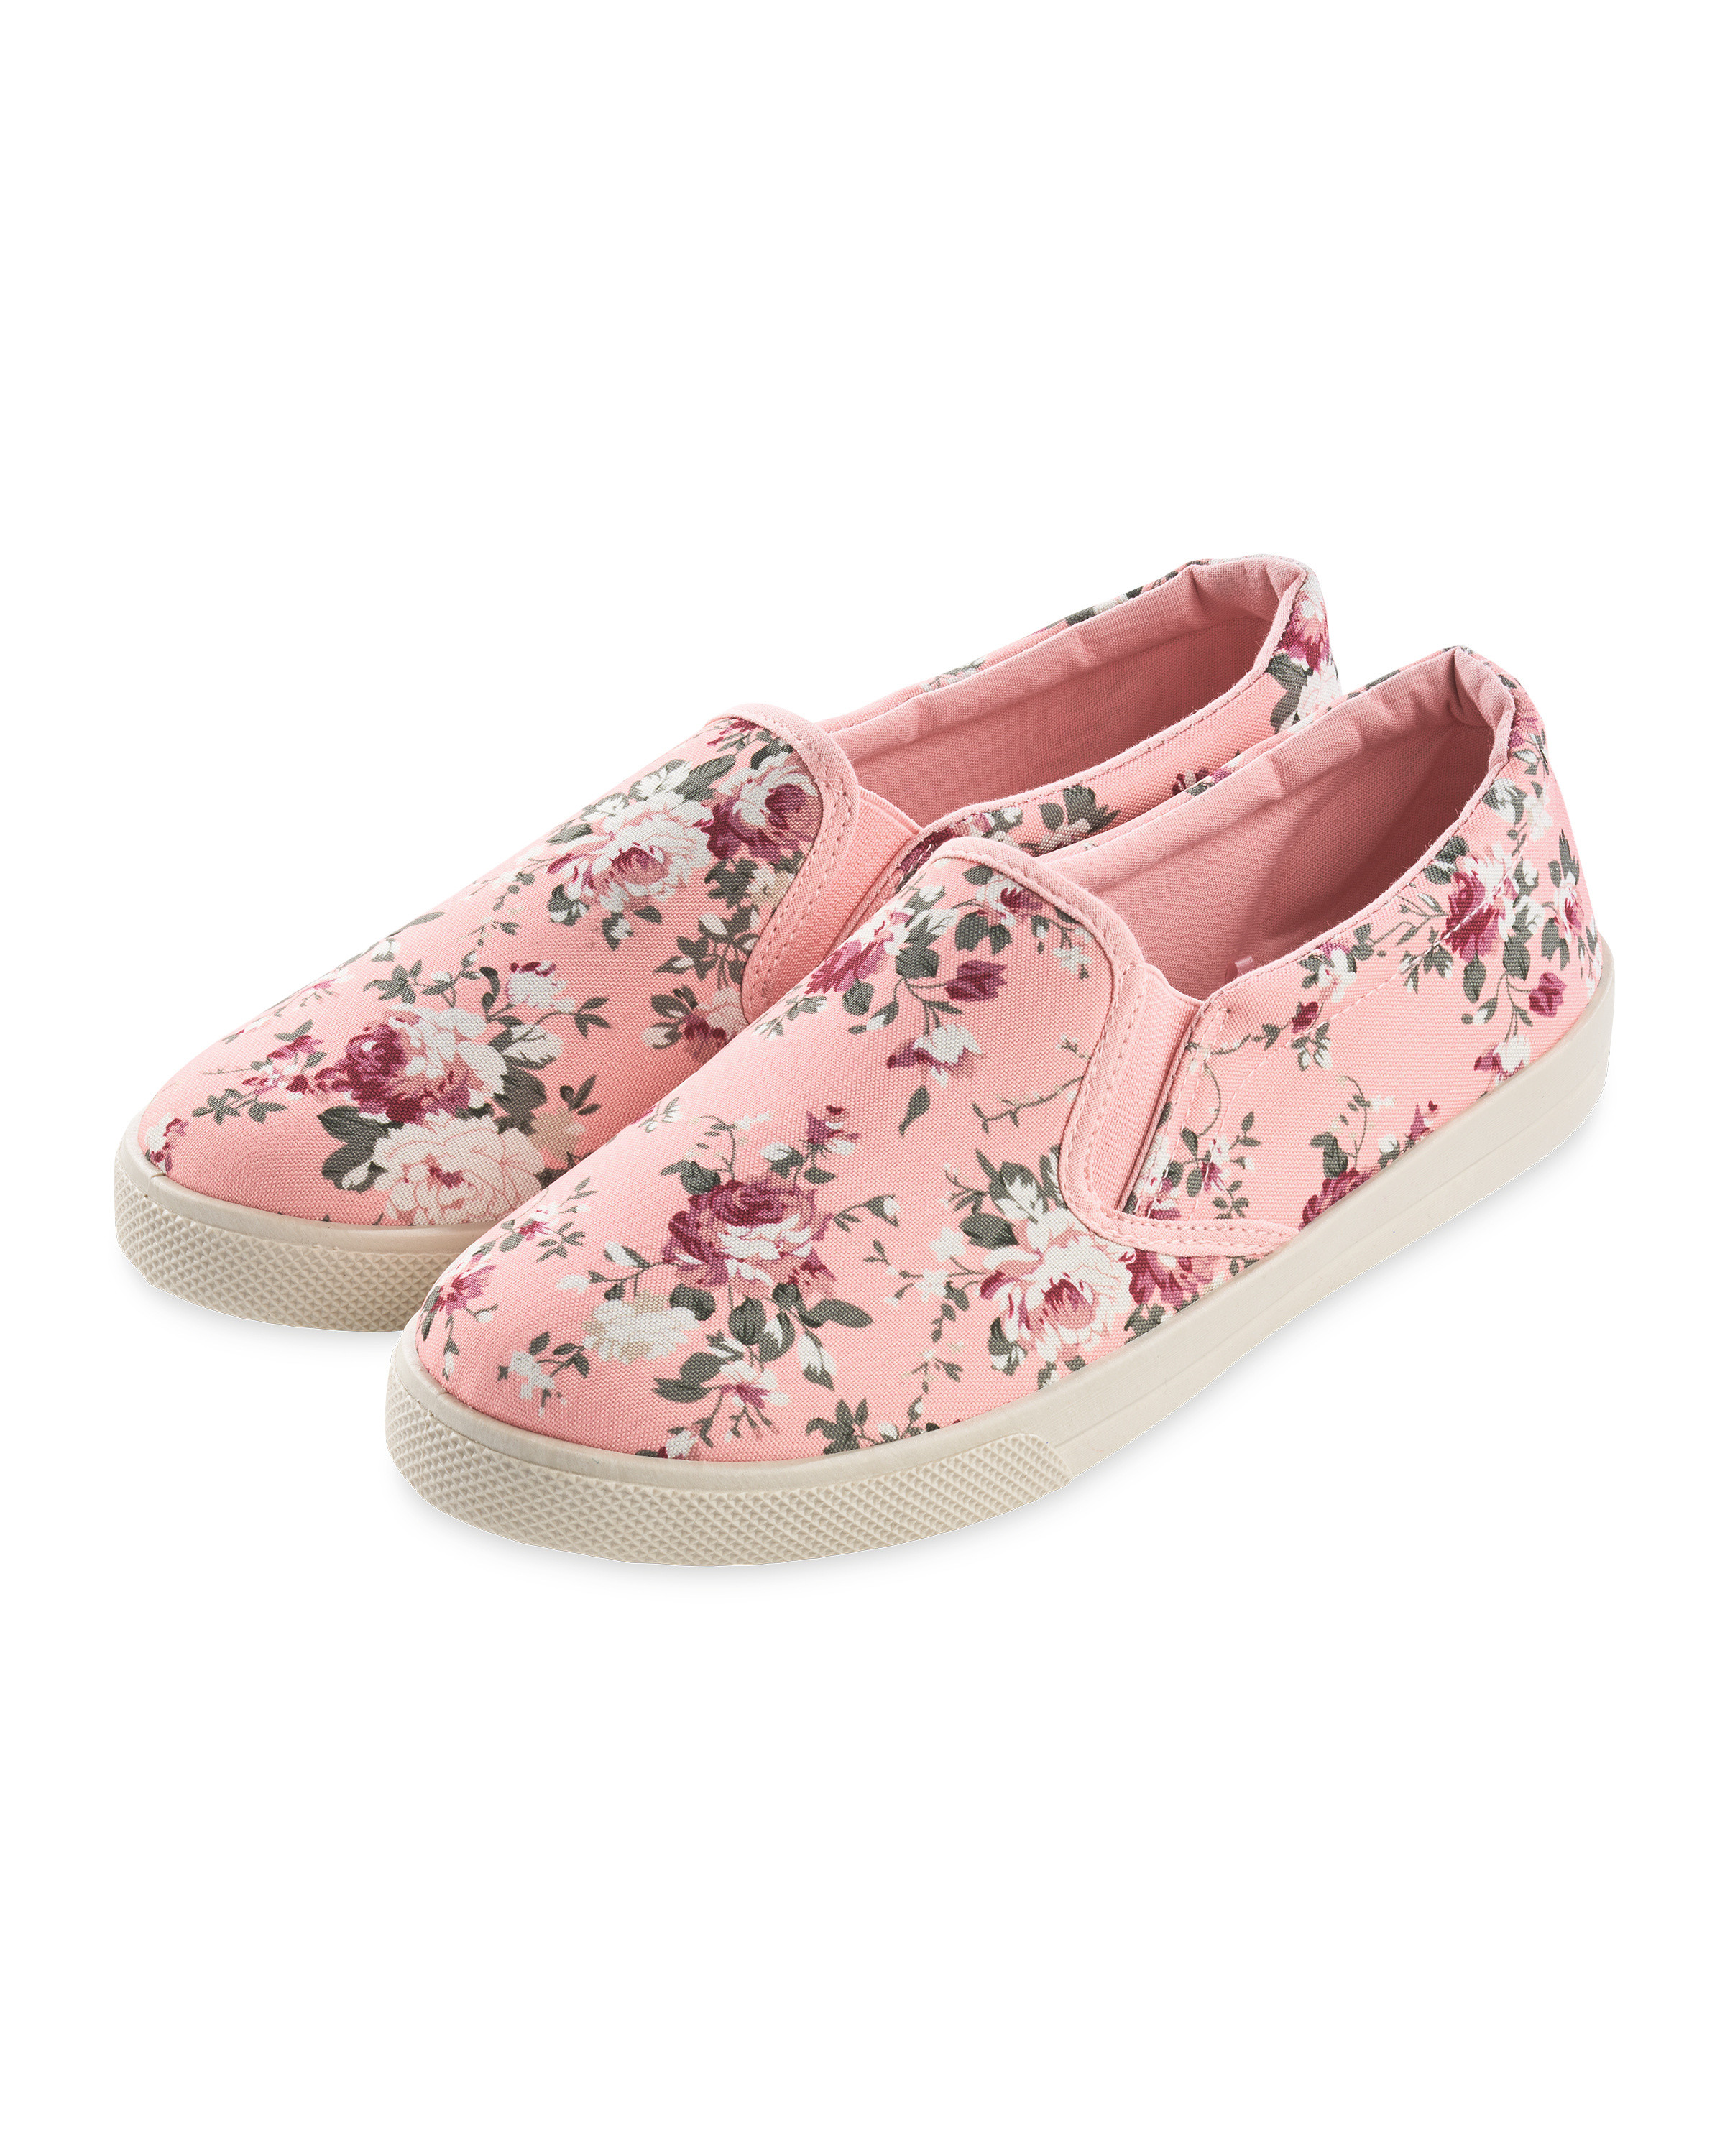 31f4f774aad Ladies Canvas Pump Pink Floral - ALDI UK